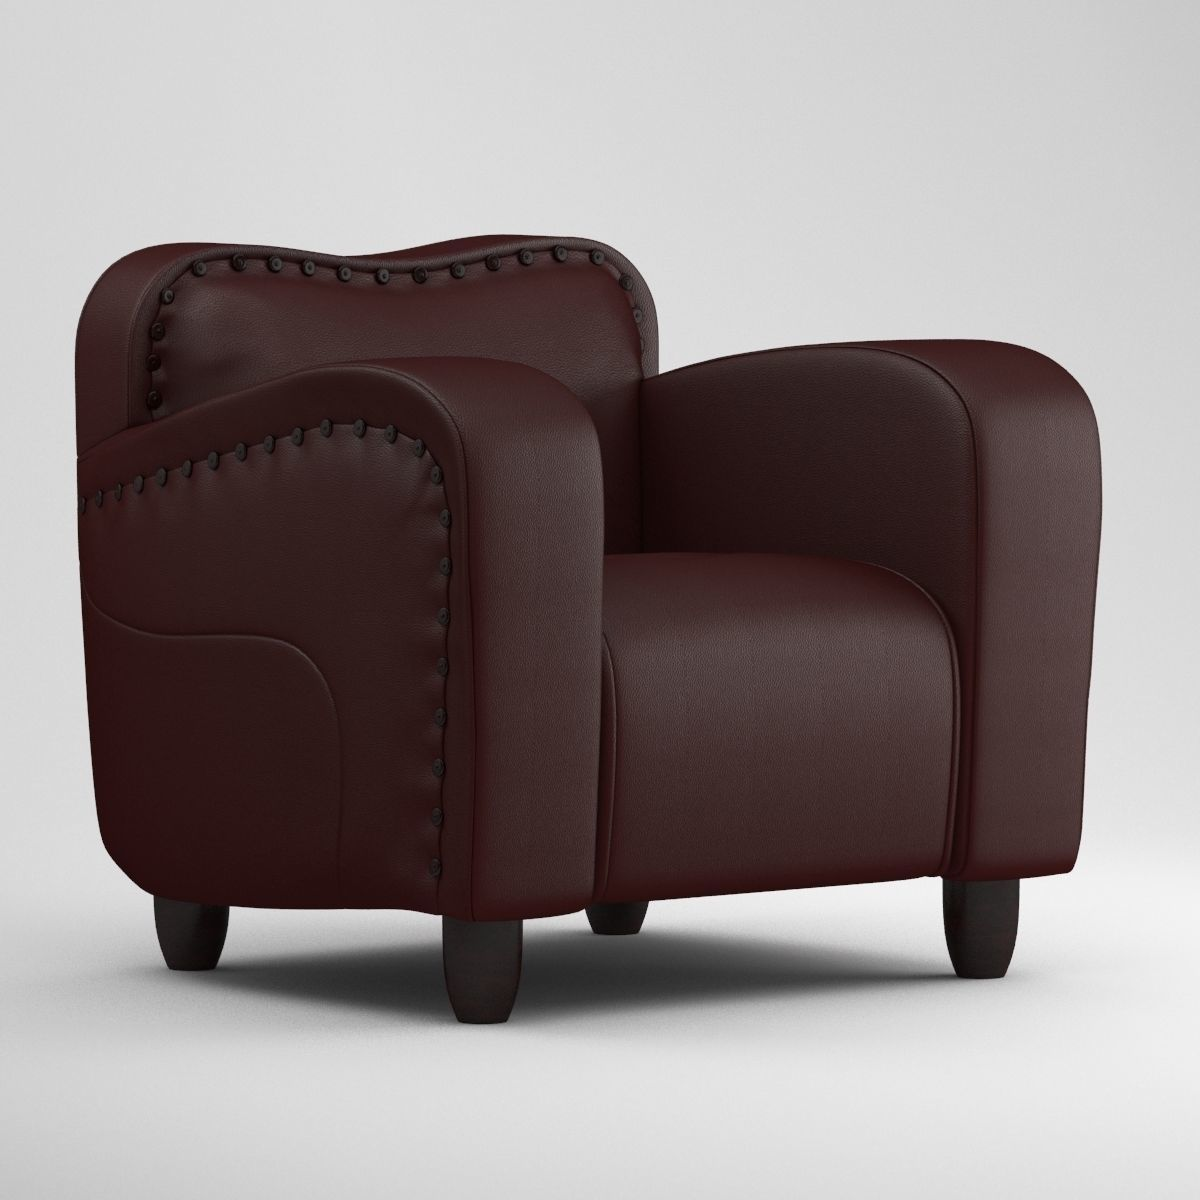 Sofa Set by archvis. / You can buy this 3D model for 12 ...